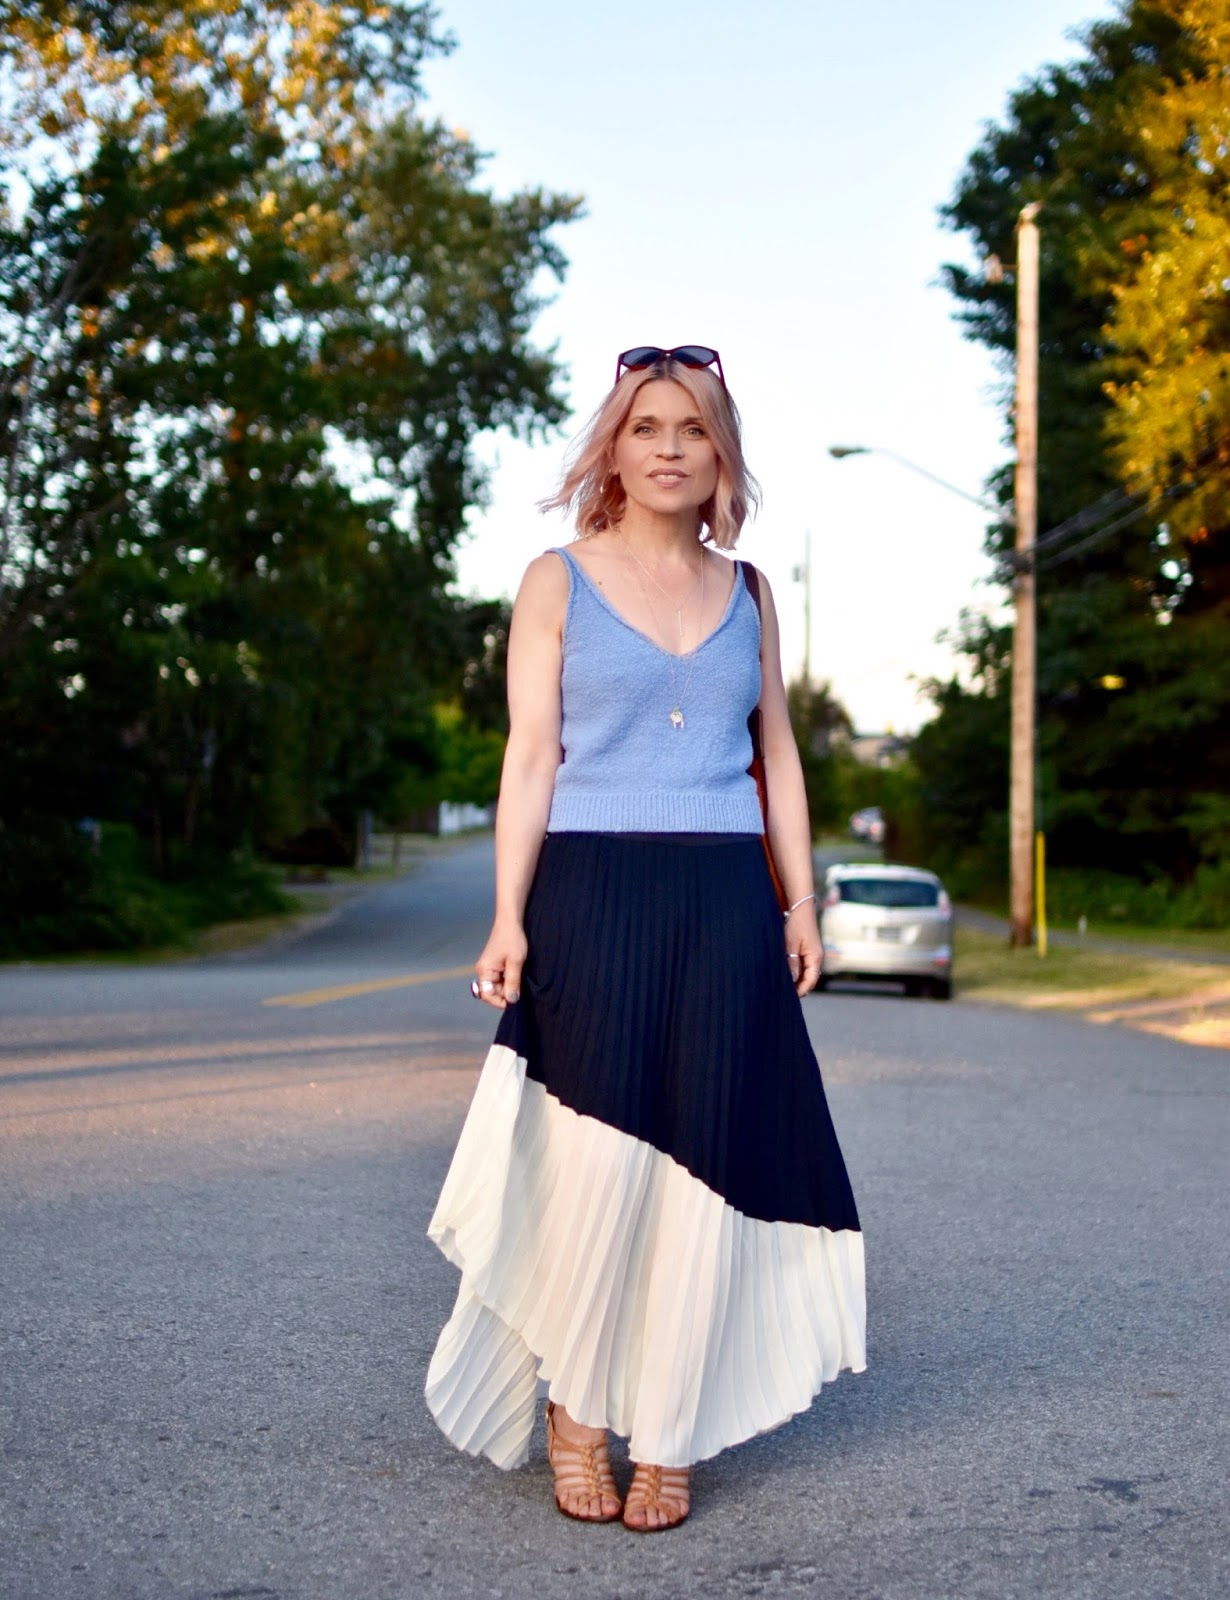 Monika Faulkner personal style inspiration - pleated asymmetrical skirt, knit tank top, strappy sandals